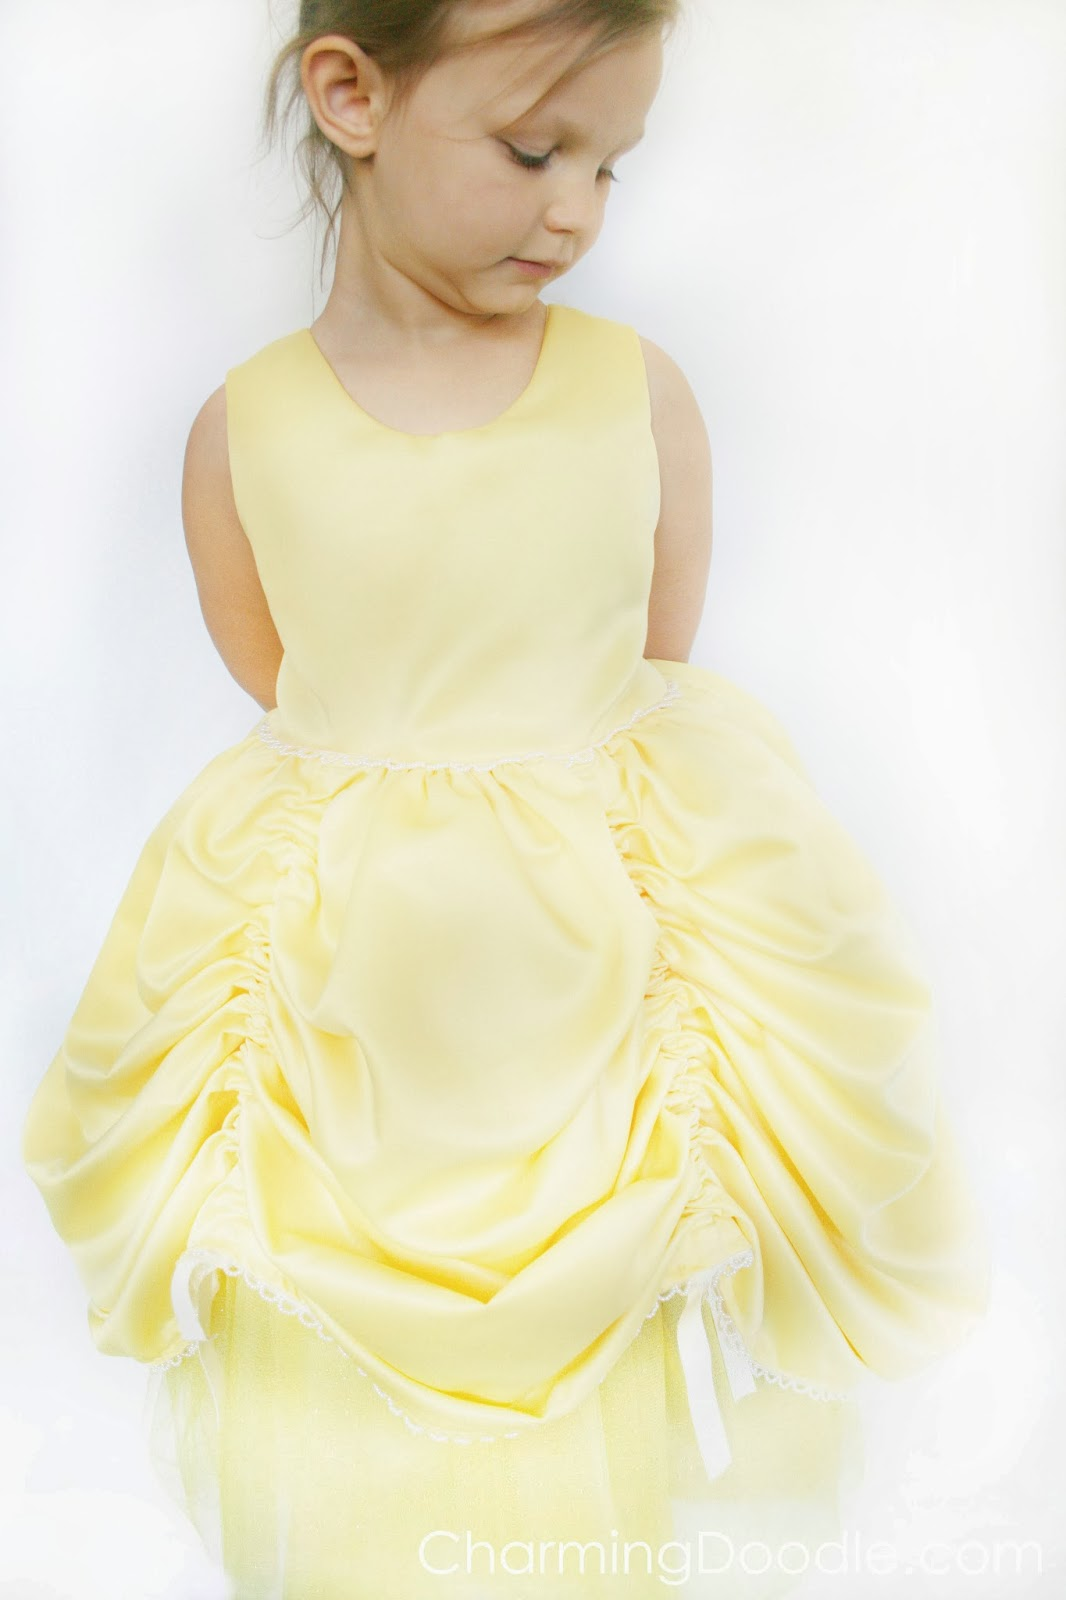 sc 1 st  Charming Doodle & Charming Doodle...sew it build it!: Homemade Princess Belle Costume